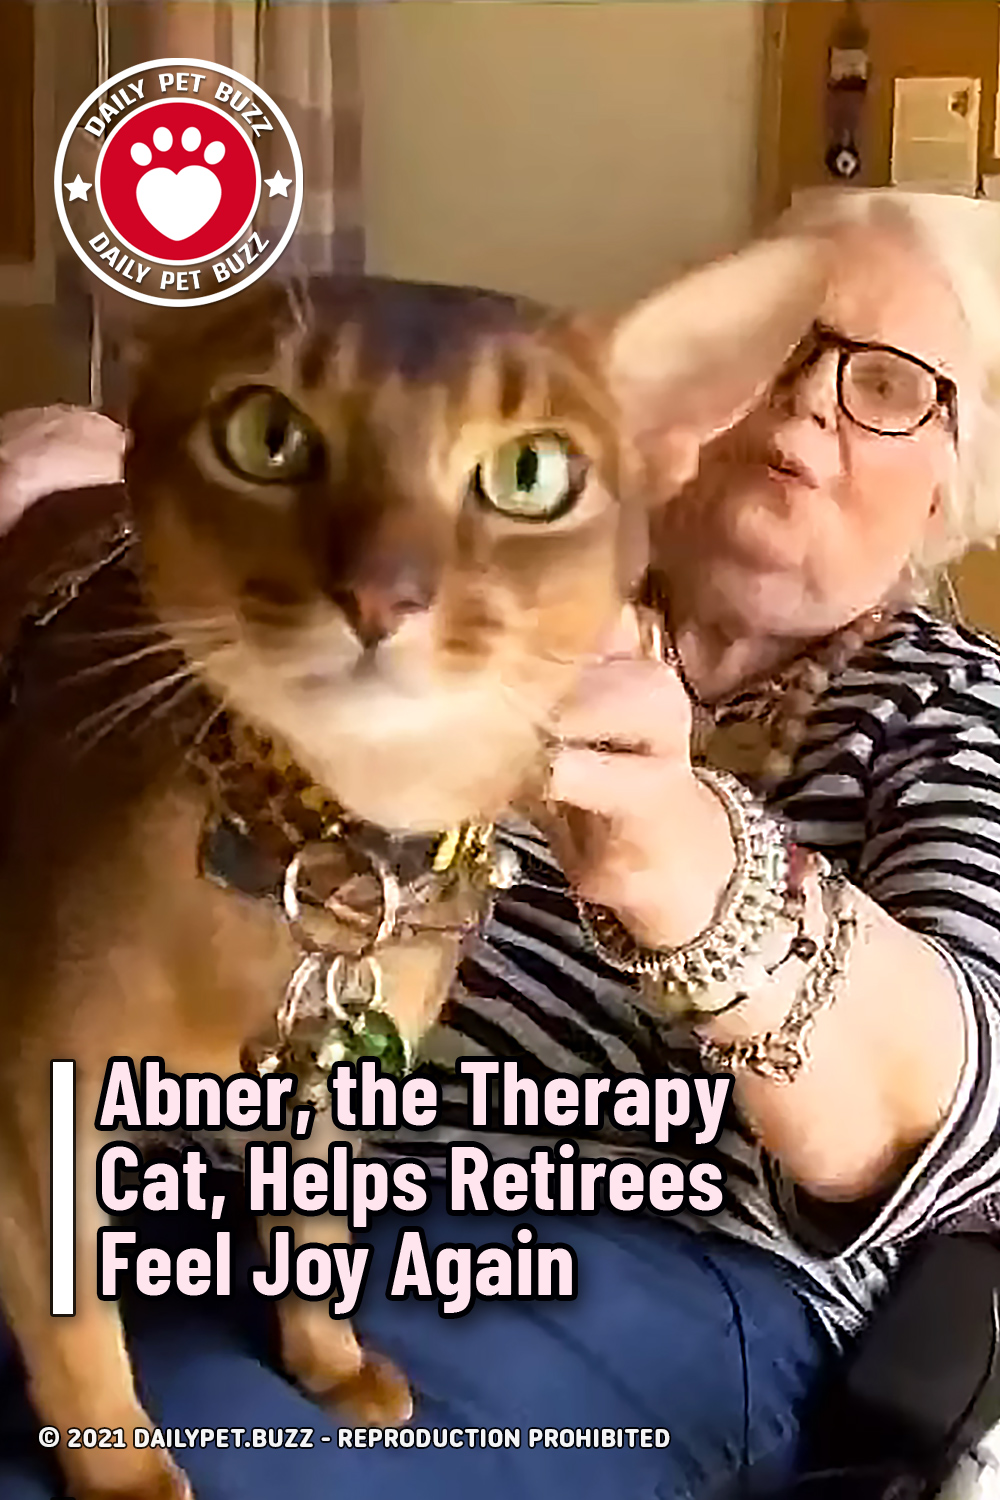 Abner, the Therapy Cat, Helps Retirees Feel Joy Again